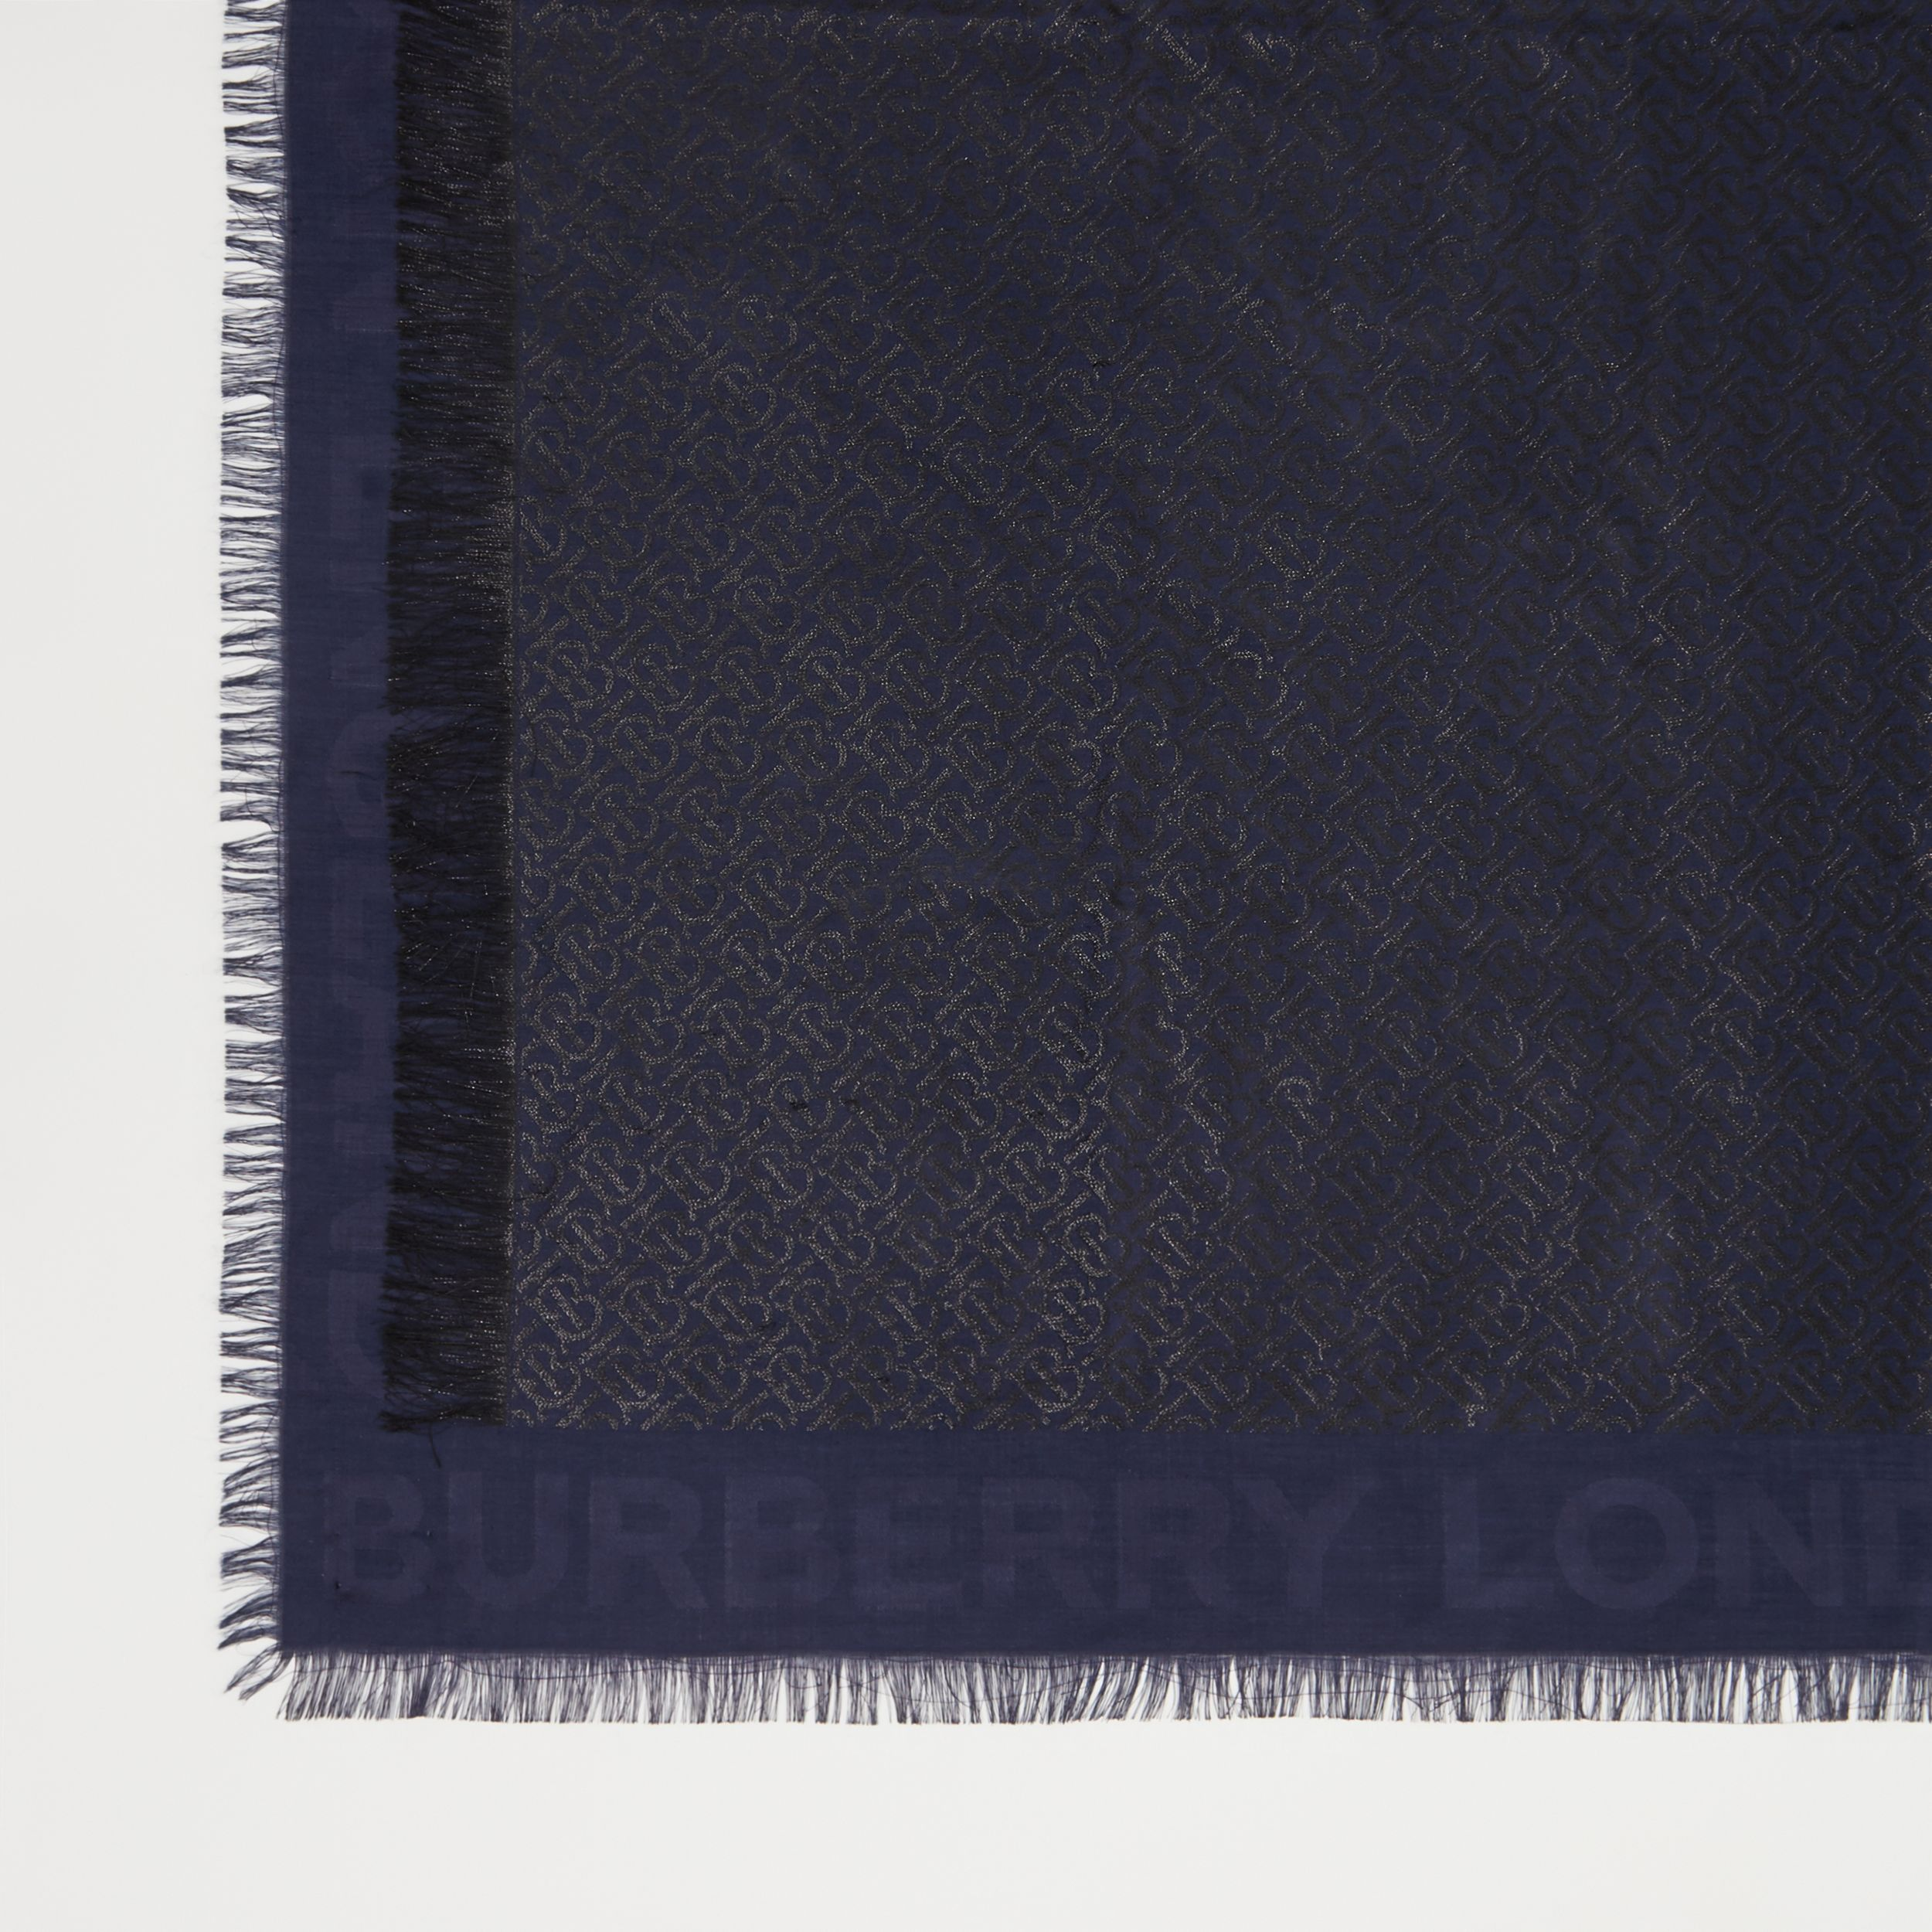 Metallic Monogram Silk Blend Large Square Scarf in Navy/black | Burberry - 2